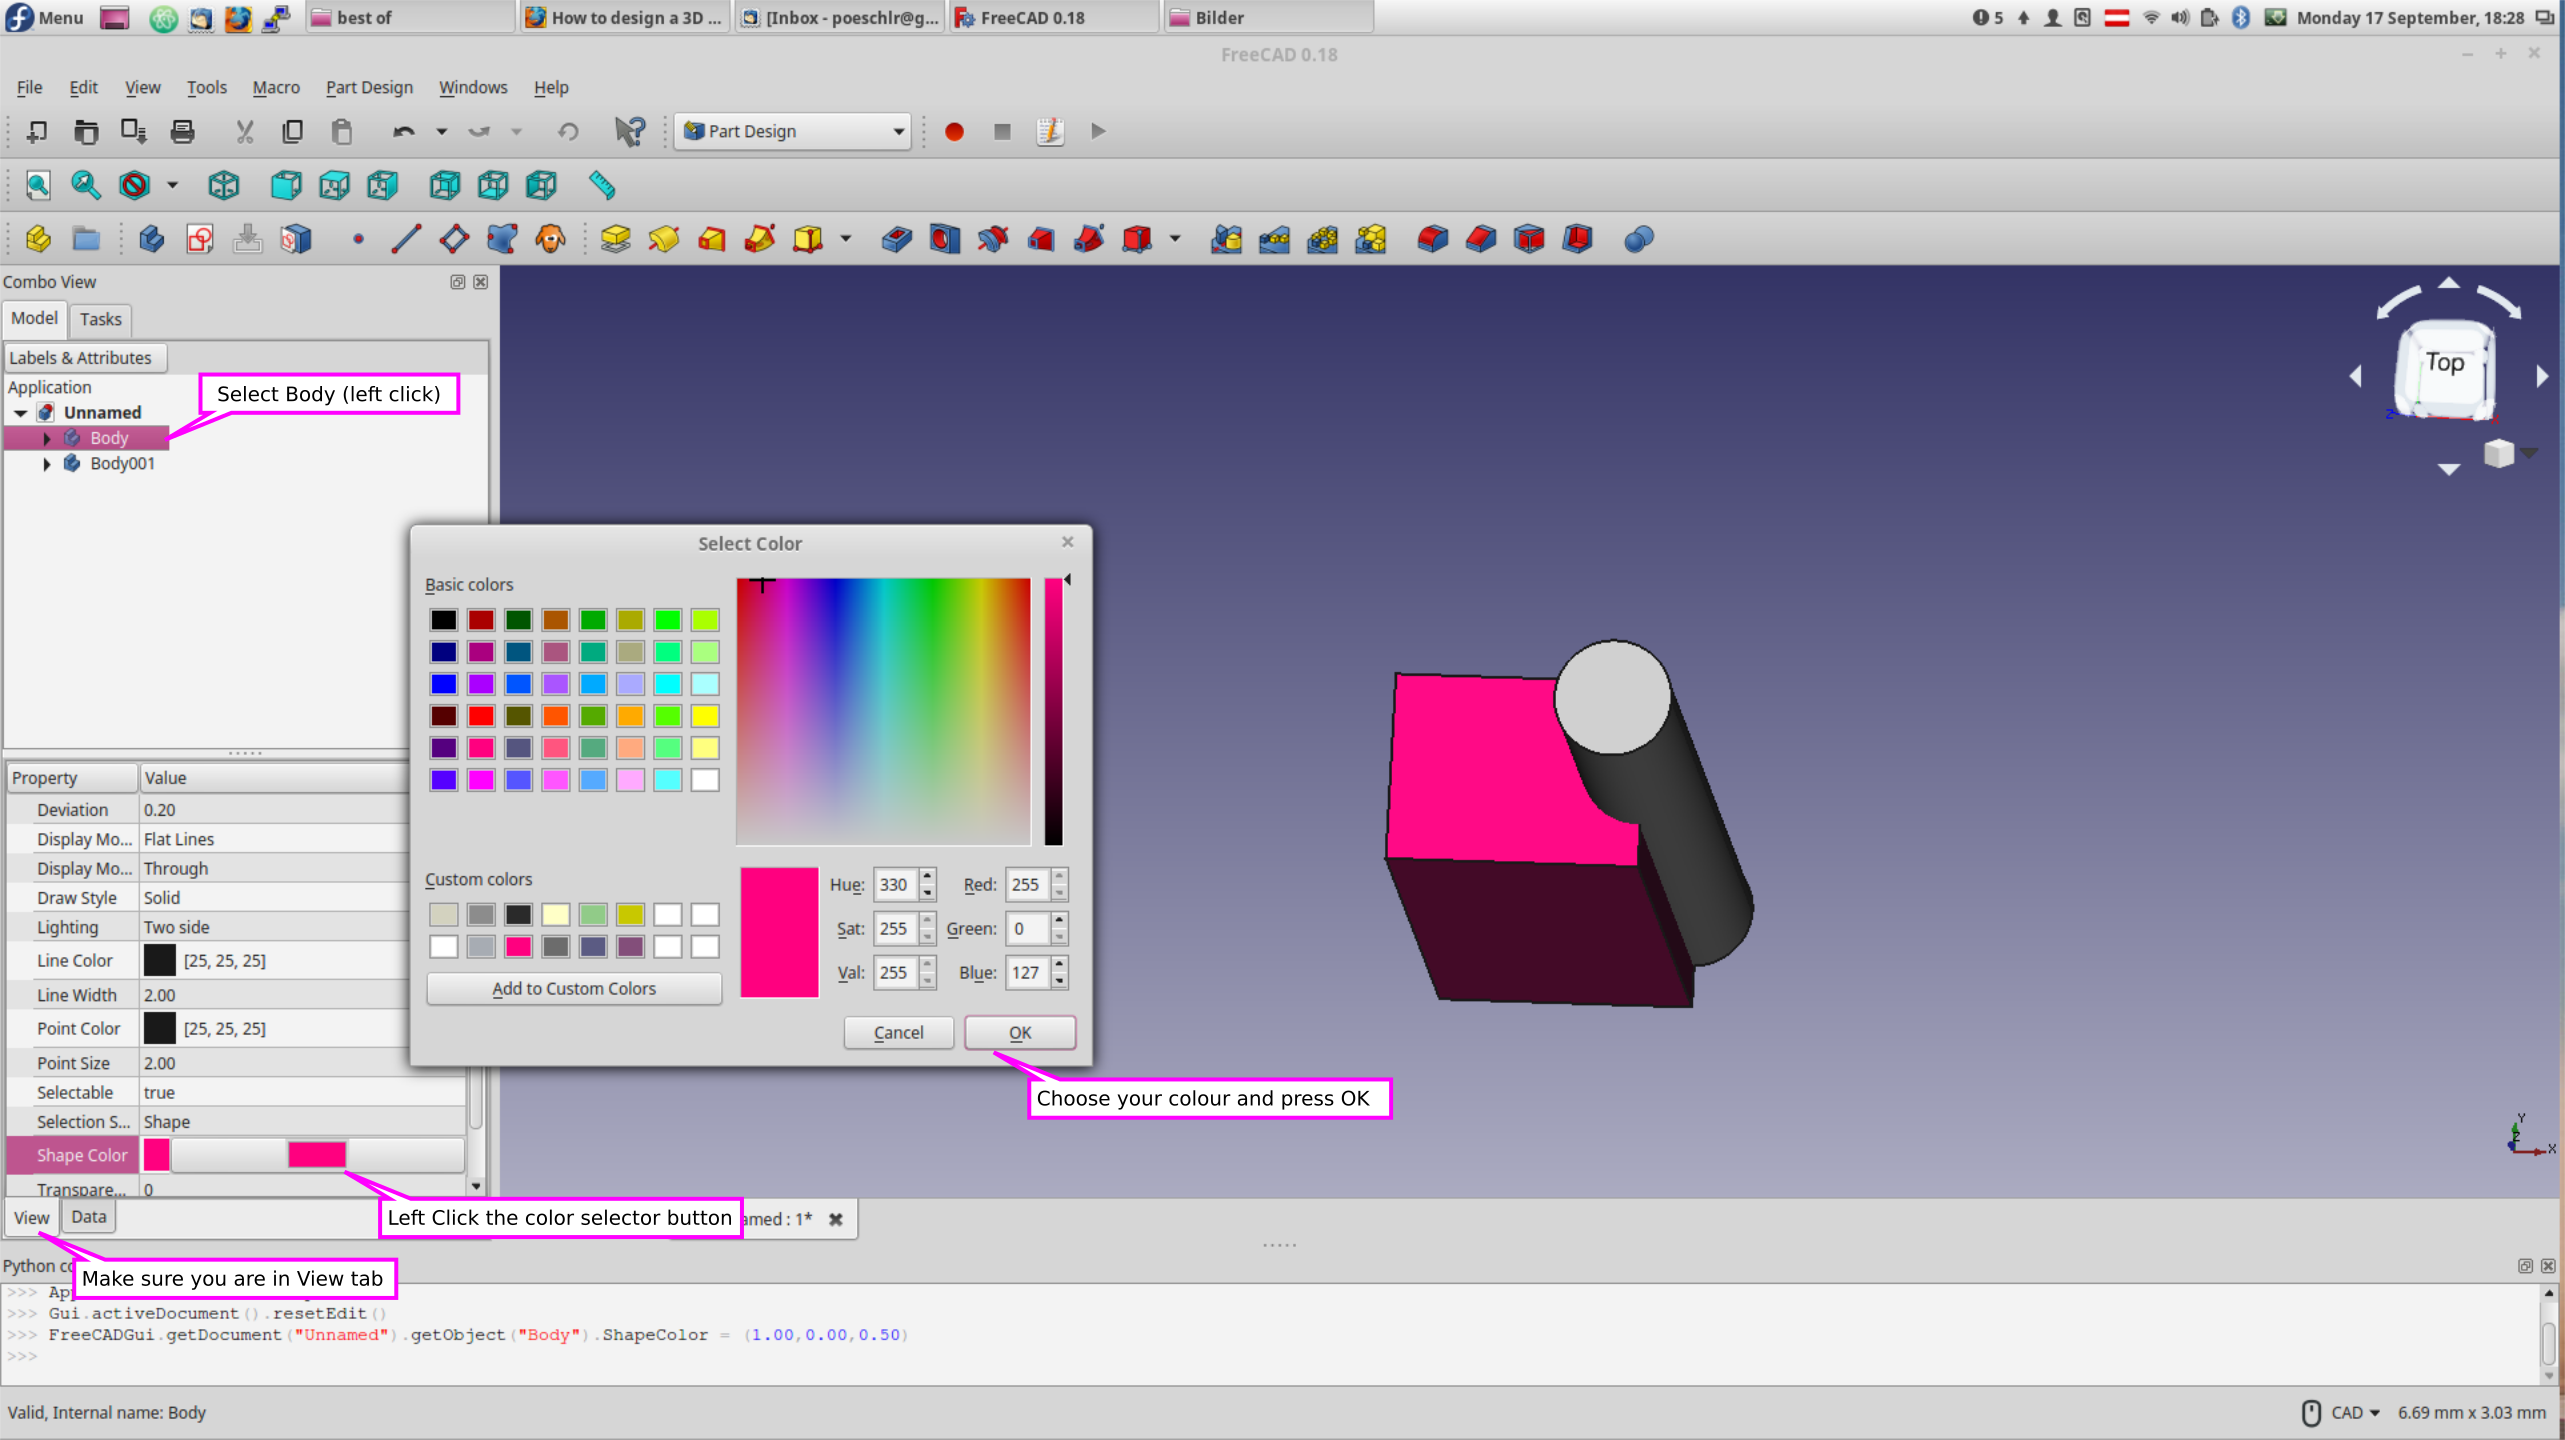 How to design a 3D shape with color - 3D Models - KiCad info